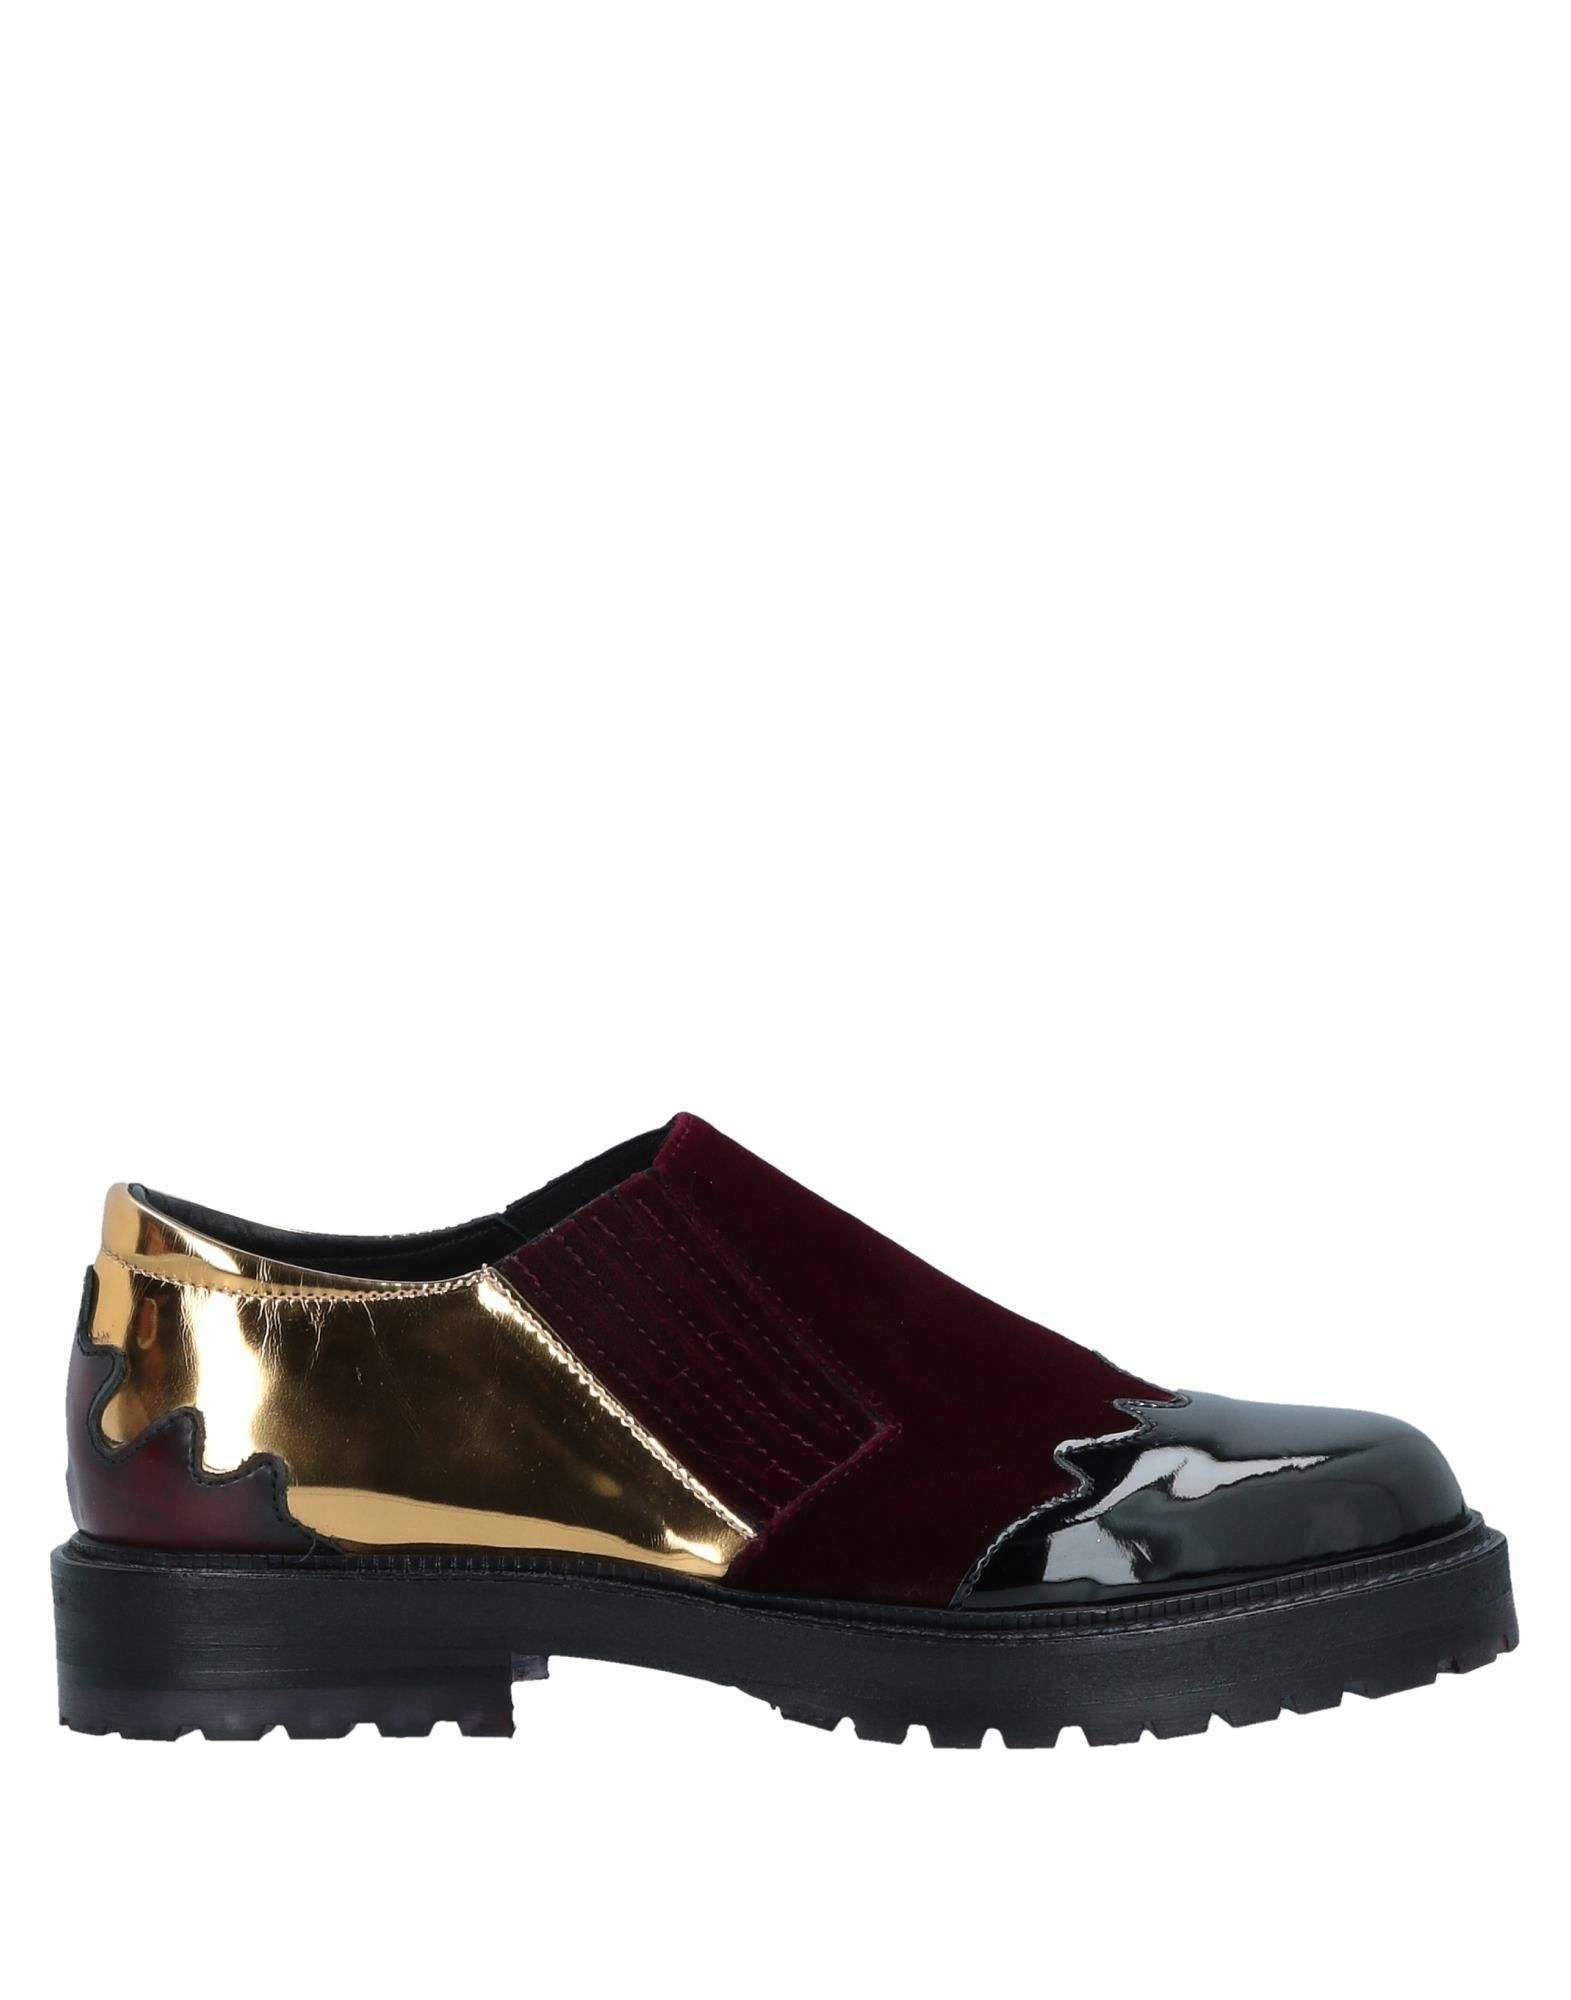 TIPE E TACCHI Loafers in Maroon